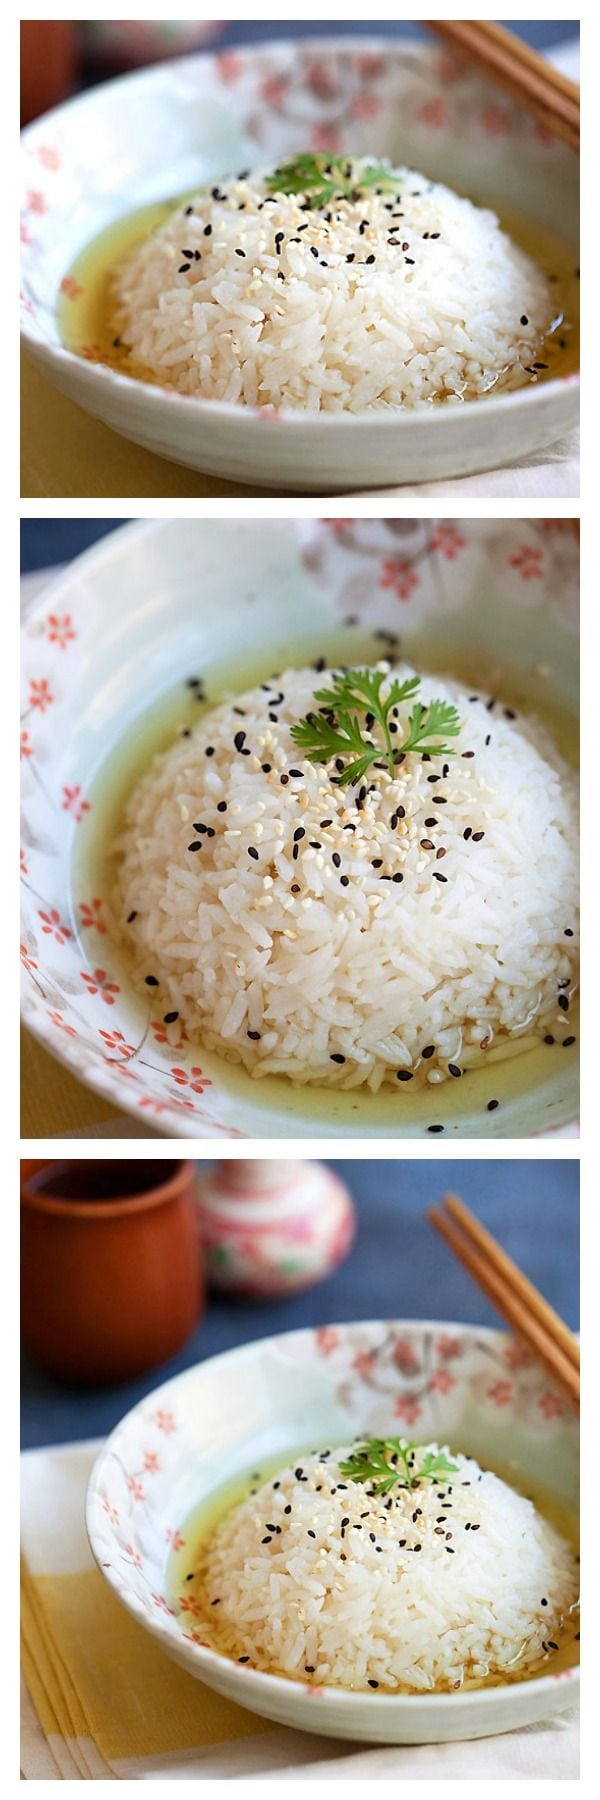 Green Tea Rice using green tea and regular steamed rice. Easy and healthy rice that you can have every day | rasamalaysia.com